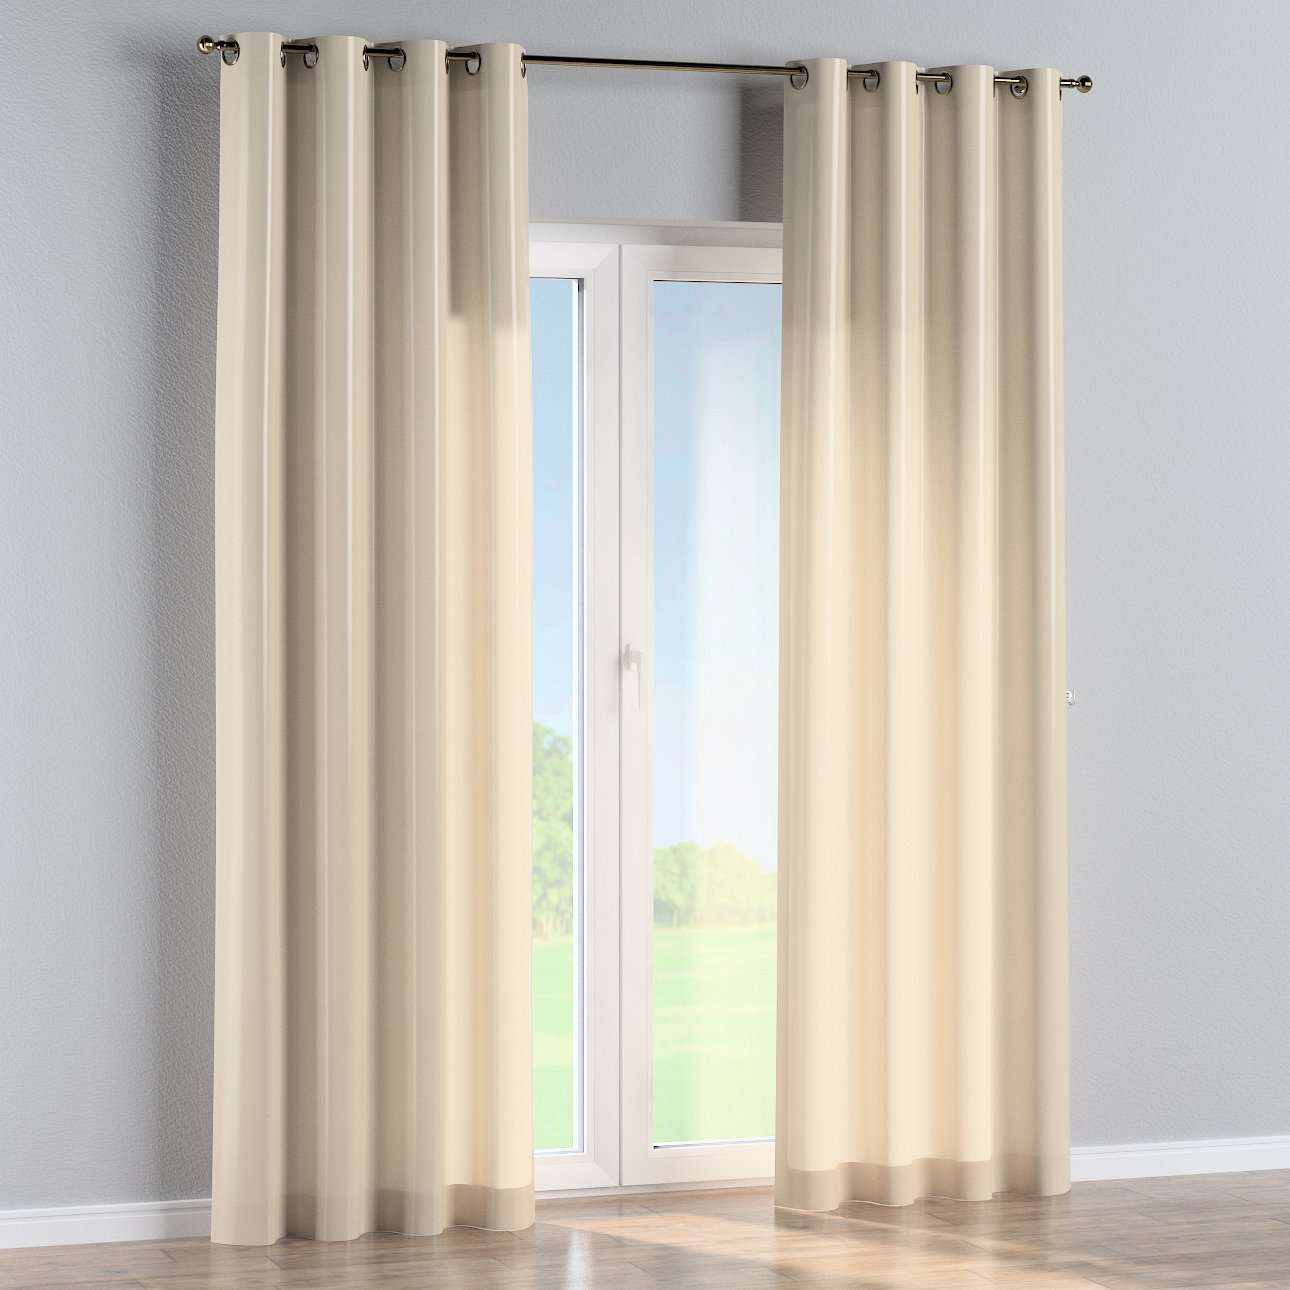 Eyelet curtains in collection Christmas, fabric: 141-73